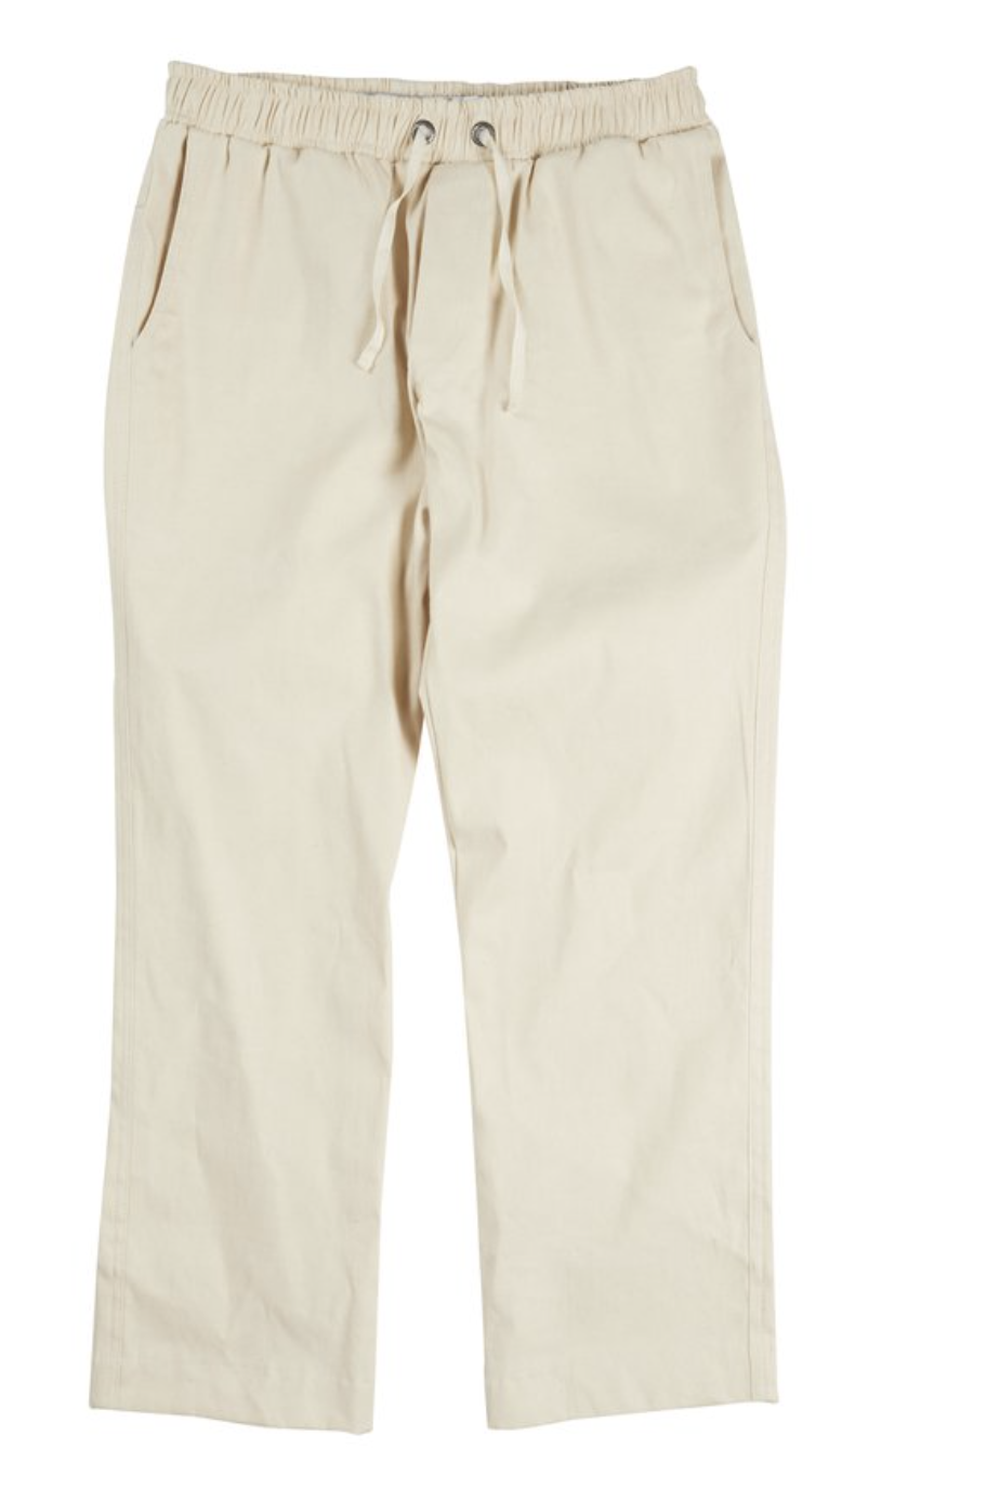 Lester Pant / Cream | Sly Guild | Mad About The Boy